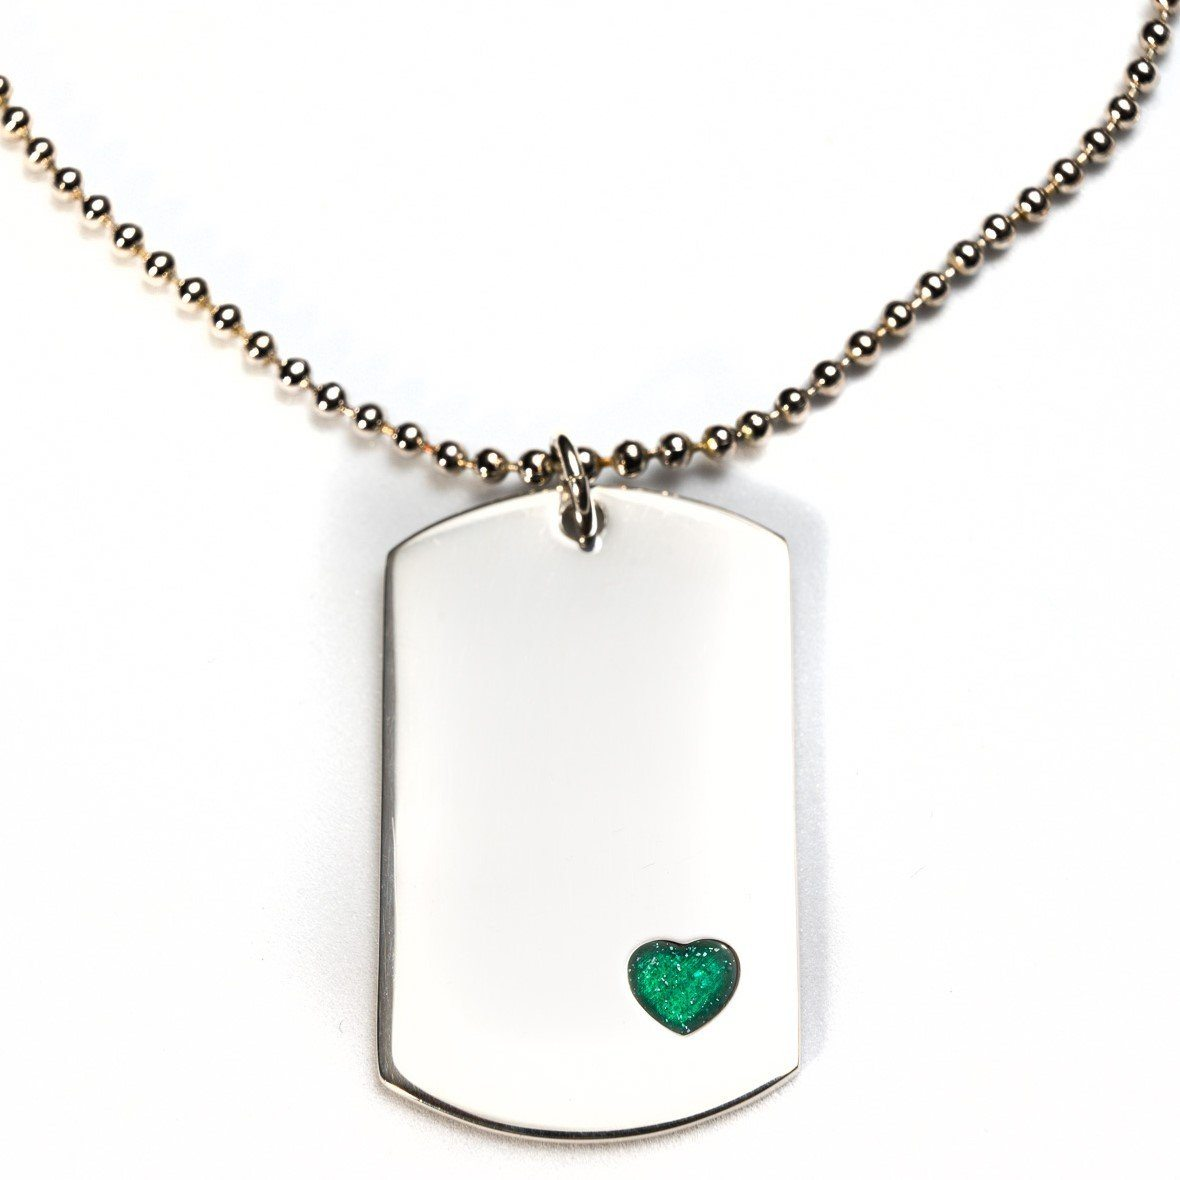 Sterling-Silver Dog Tag with Everence Inlay - Large Everence Emerald